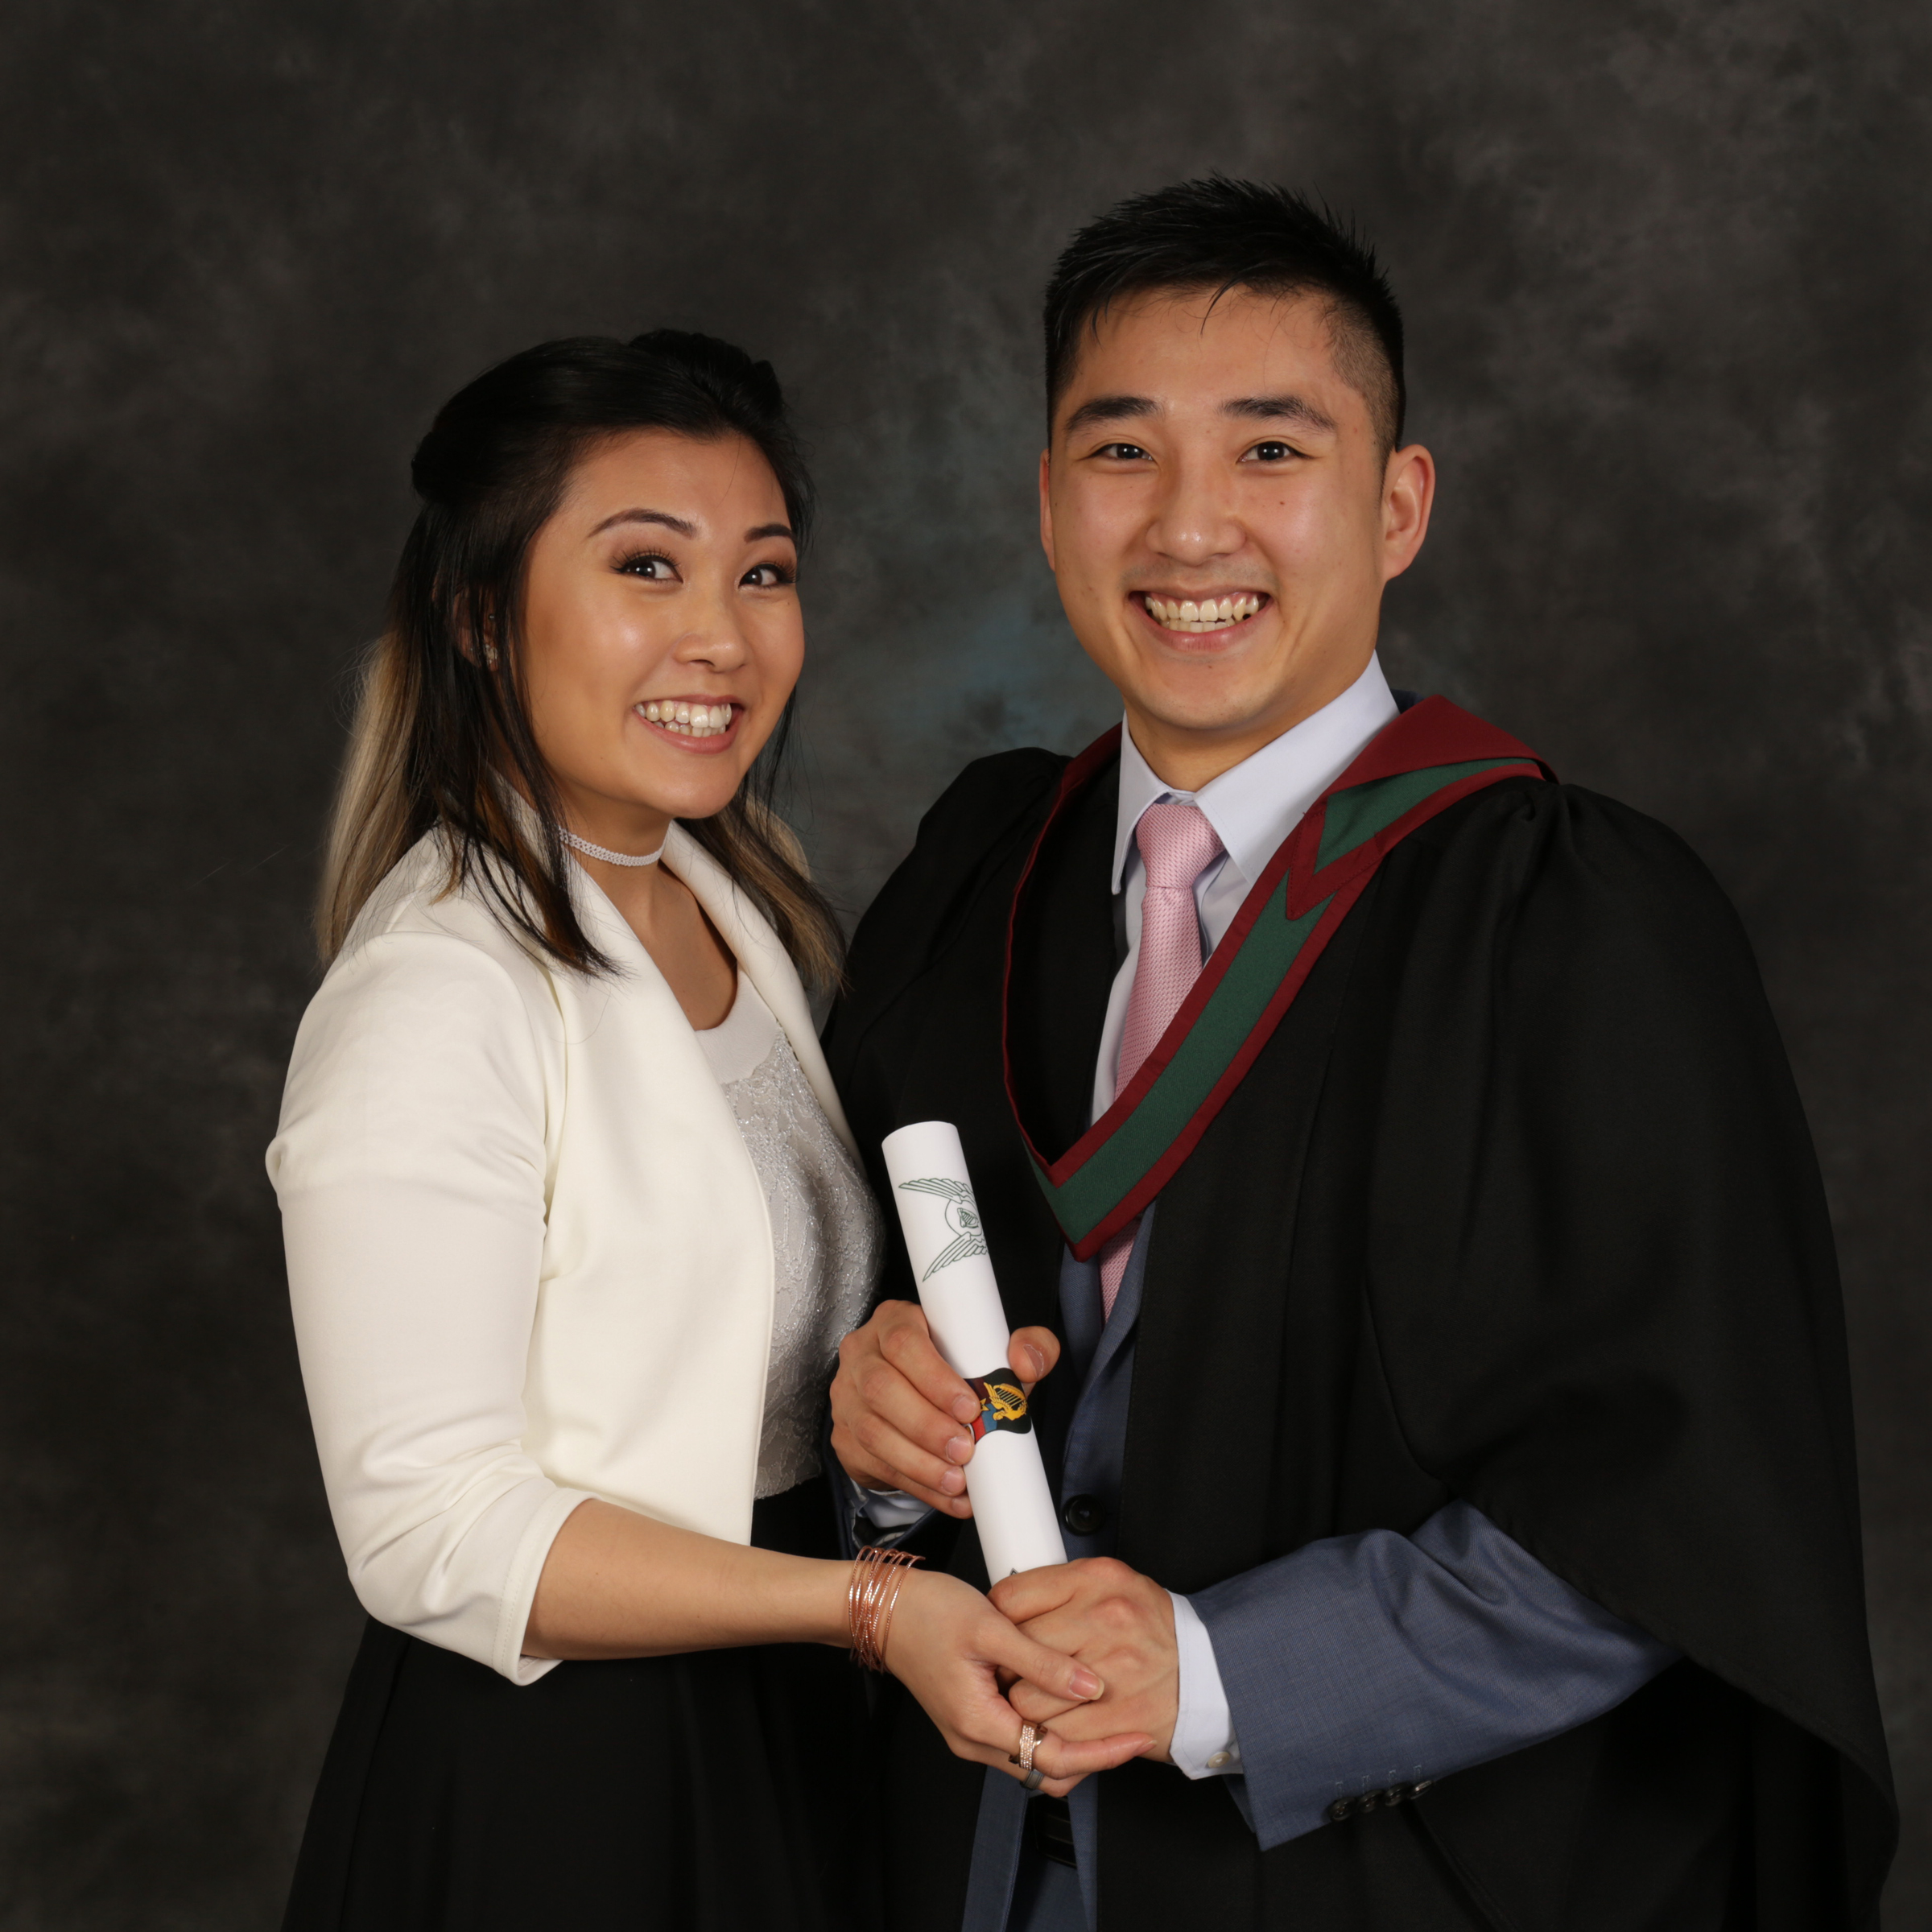 Graduation portrait couple.